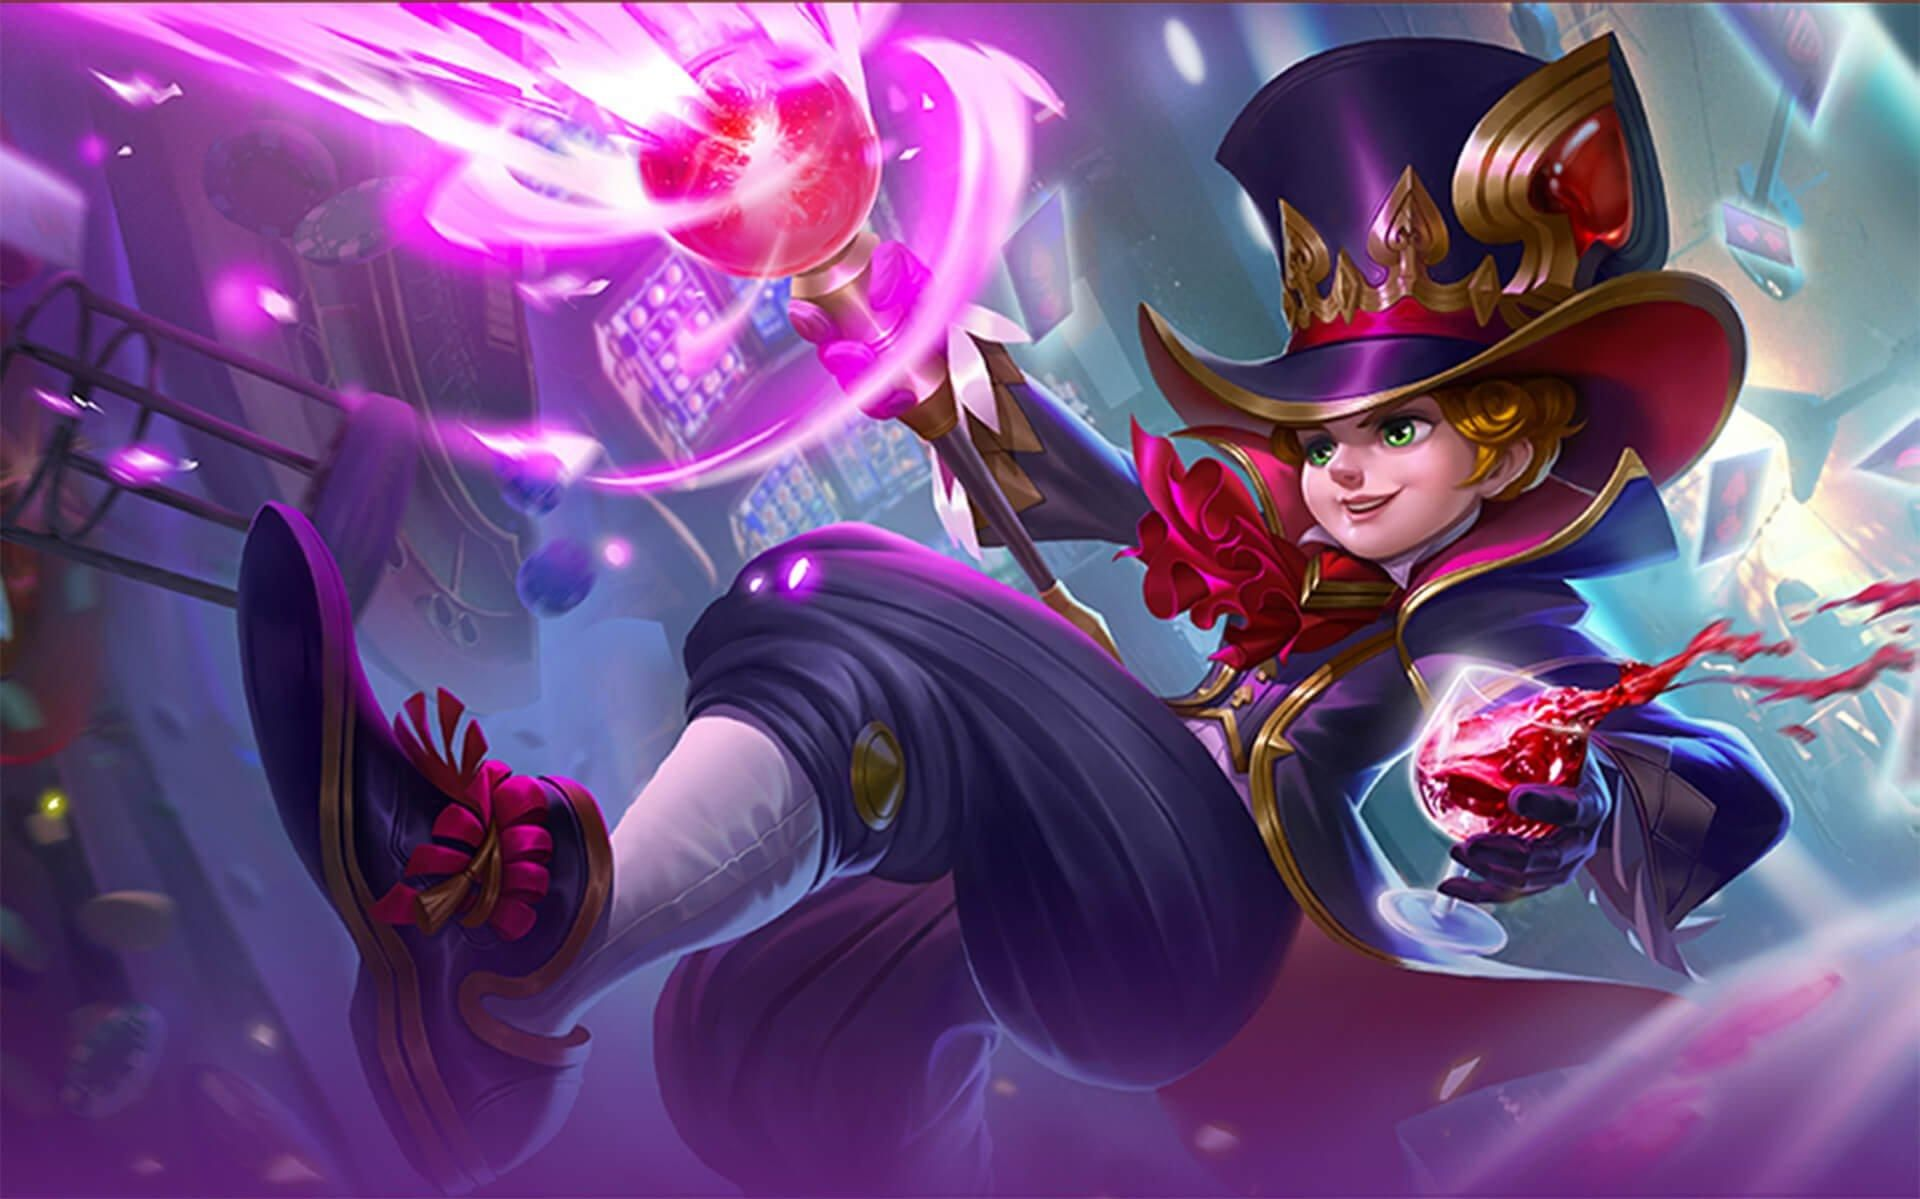 Pin by PinoyGamer on Gaming in 2020 Mobile legends